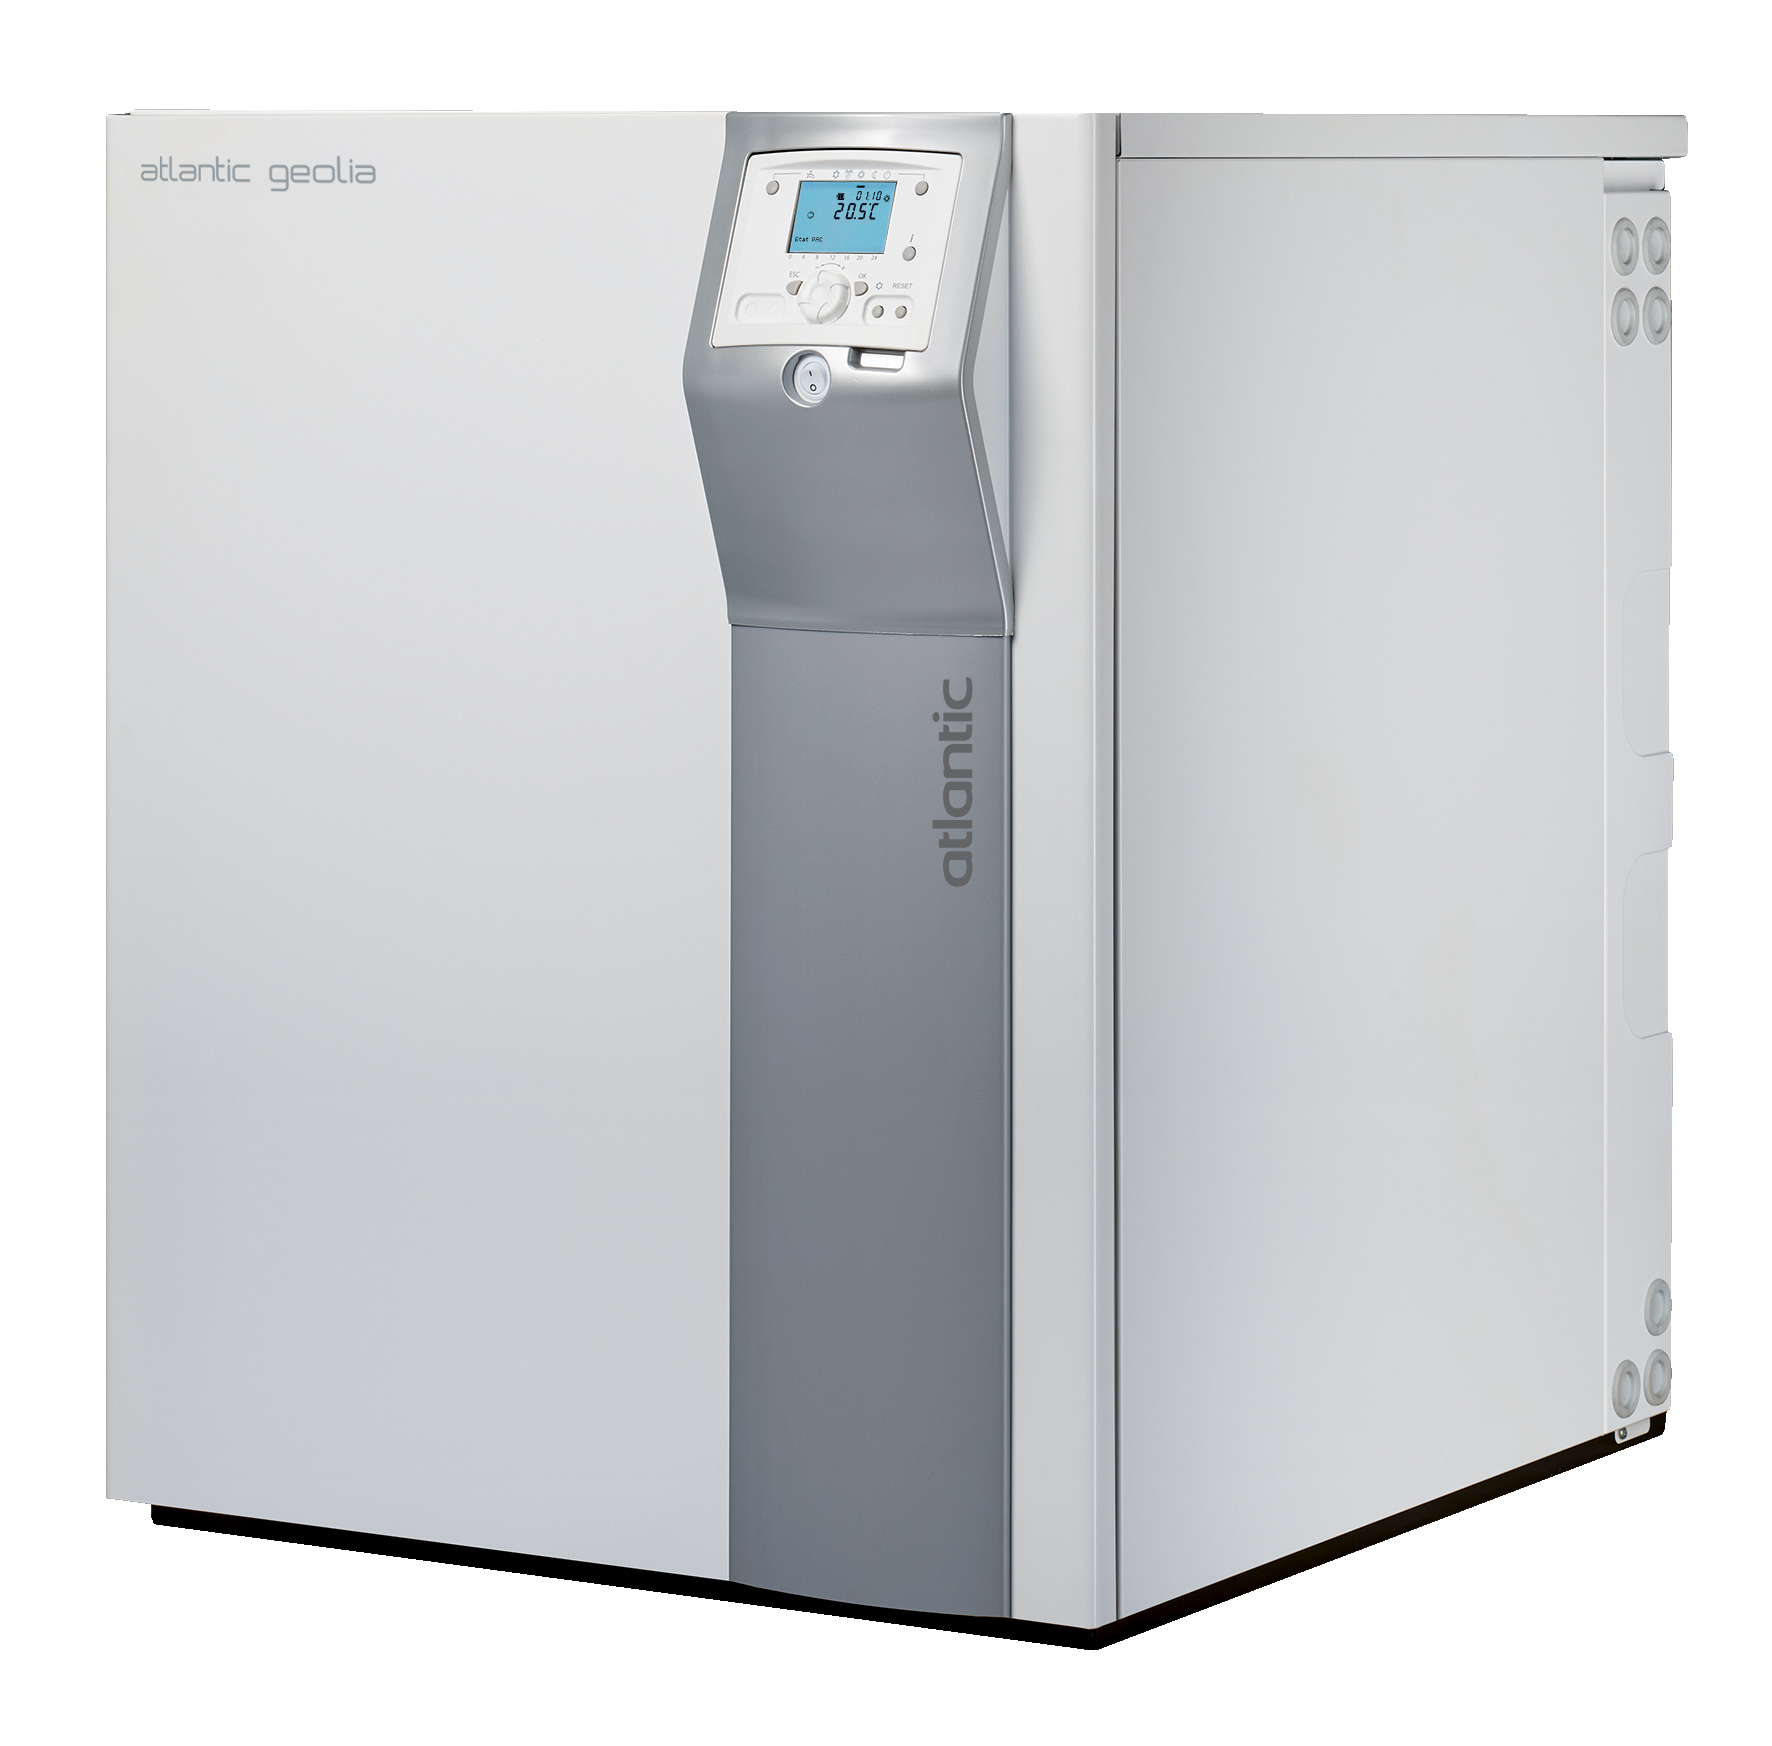 Geolia indoor unit